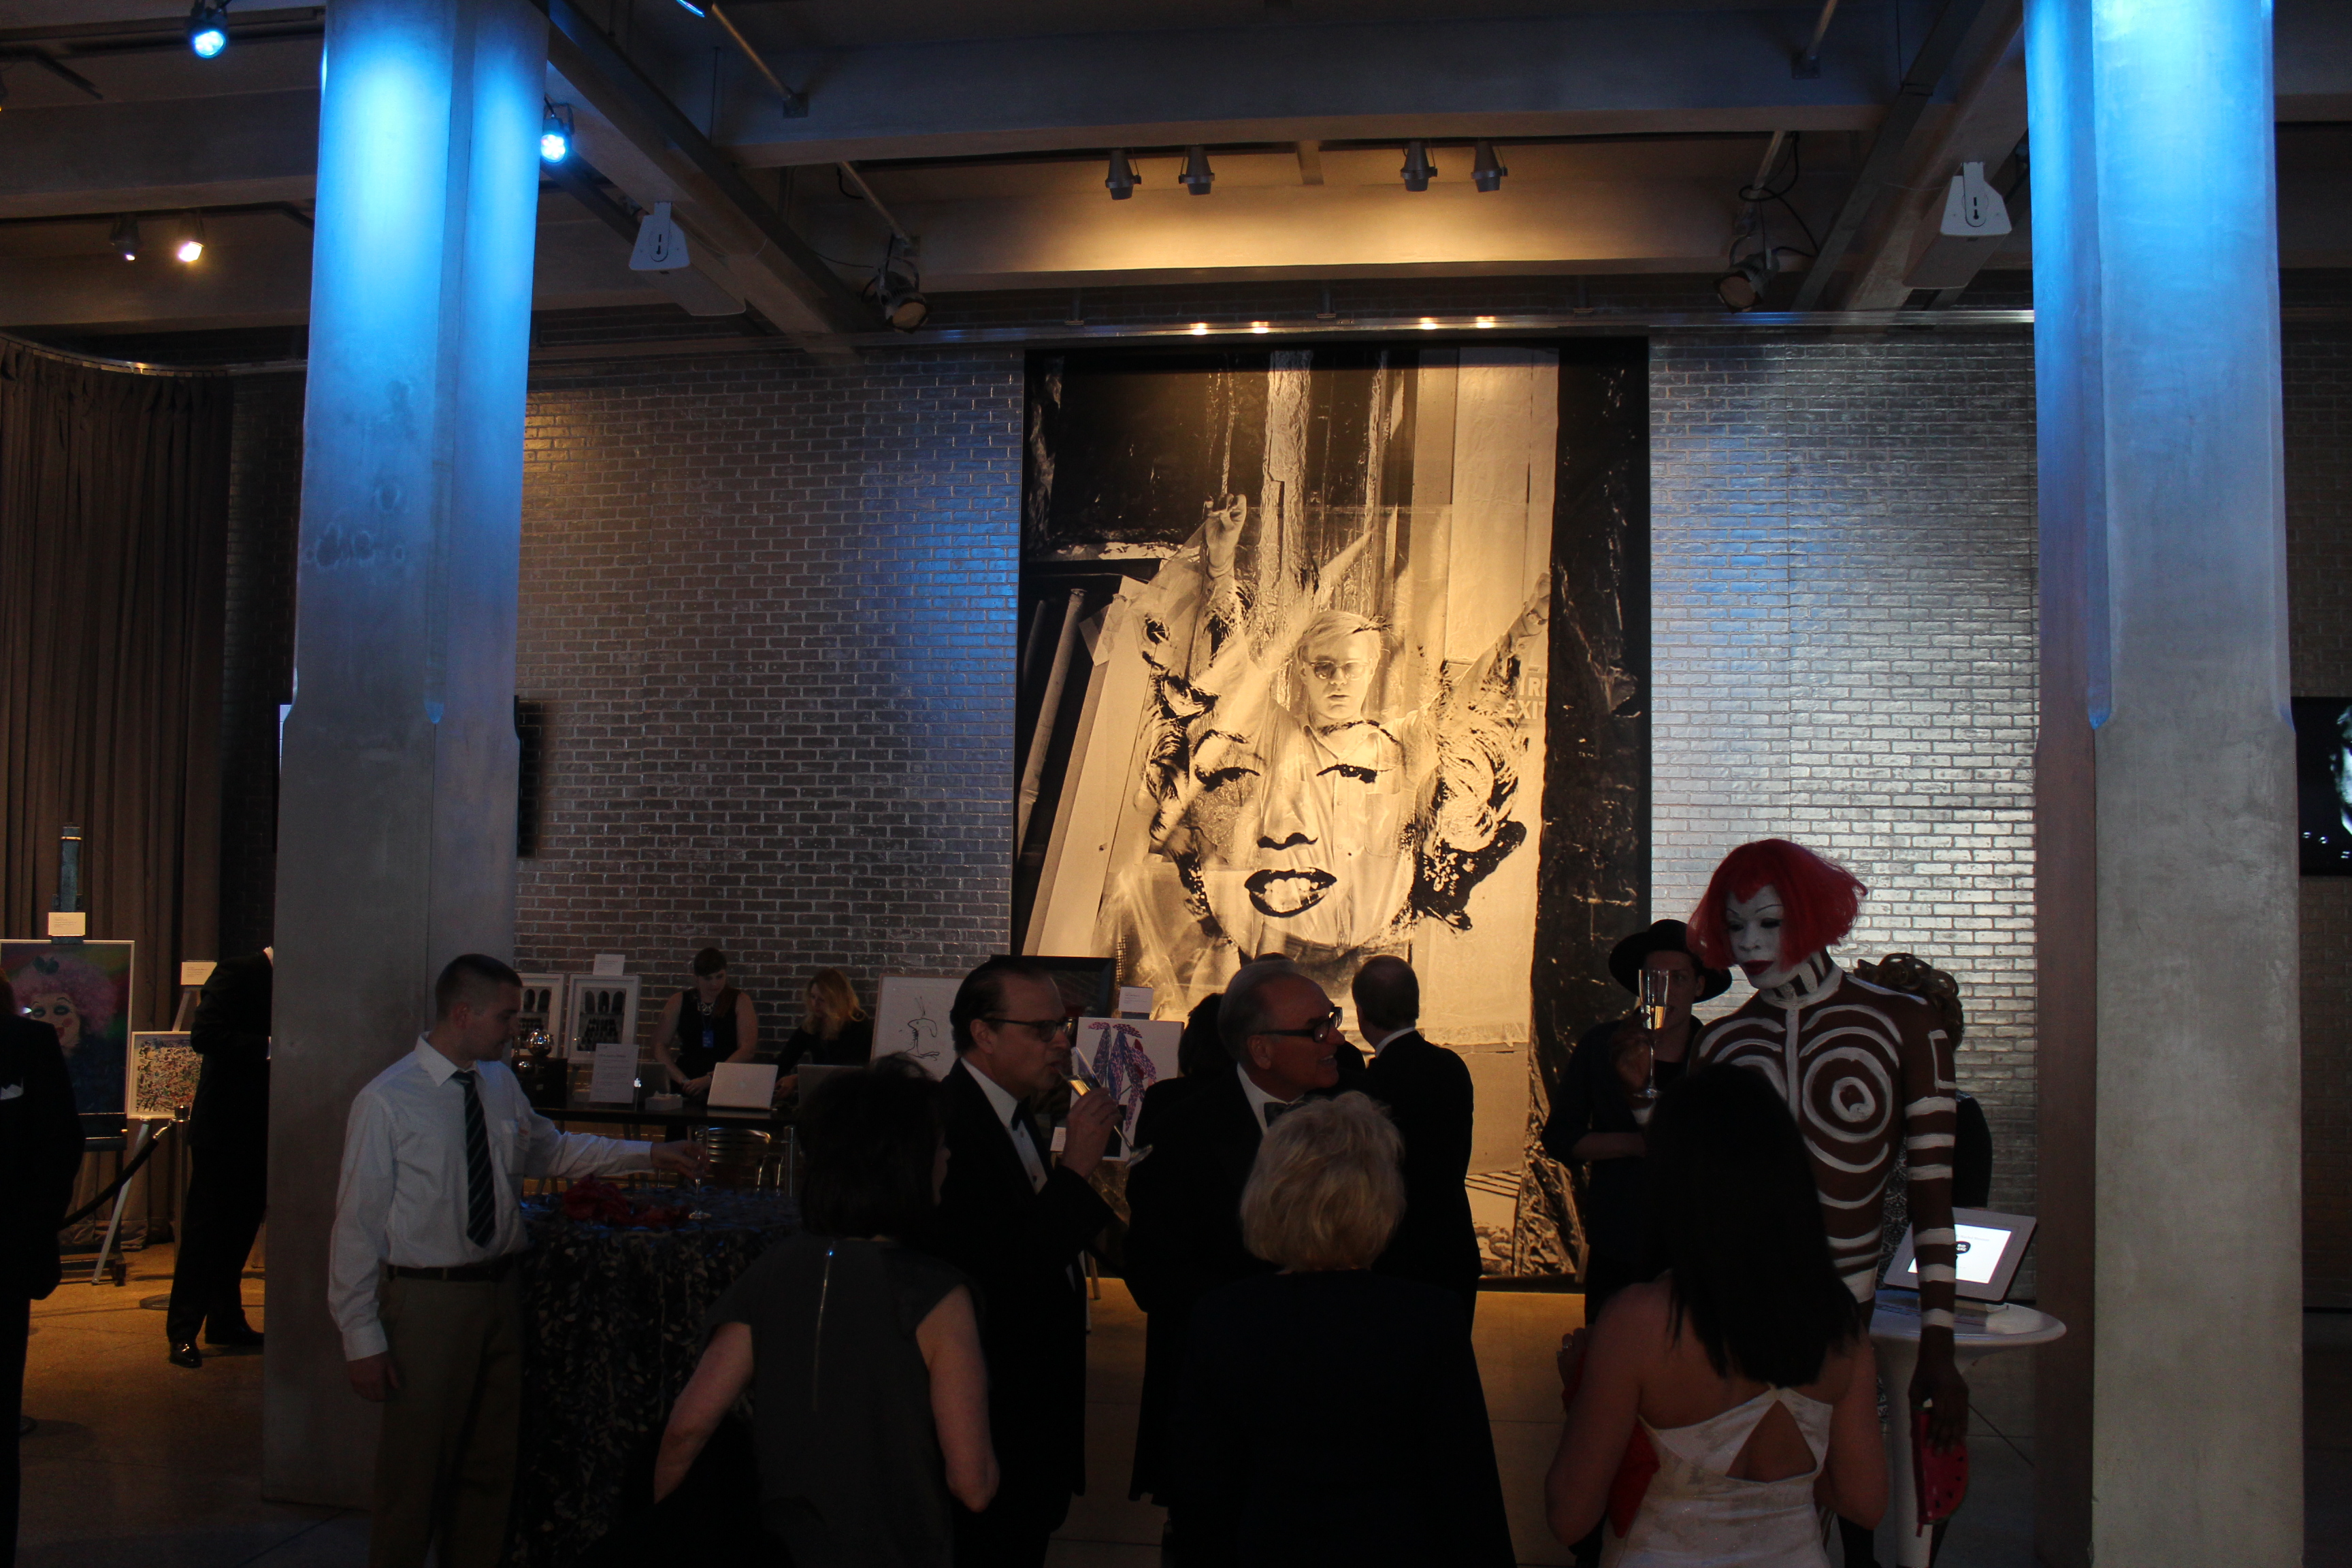 Warhol's anniversary party fruitful from 'beginning to end'